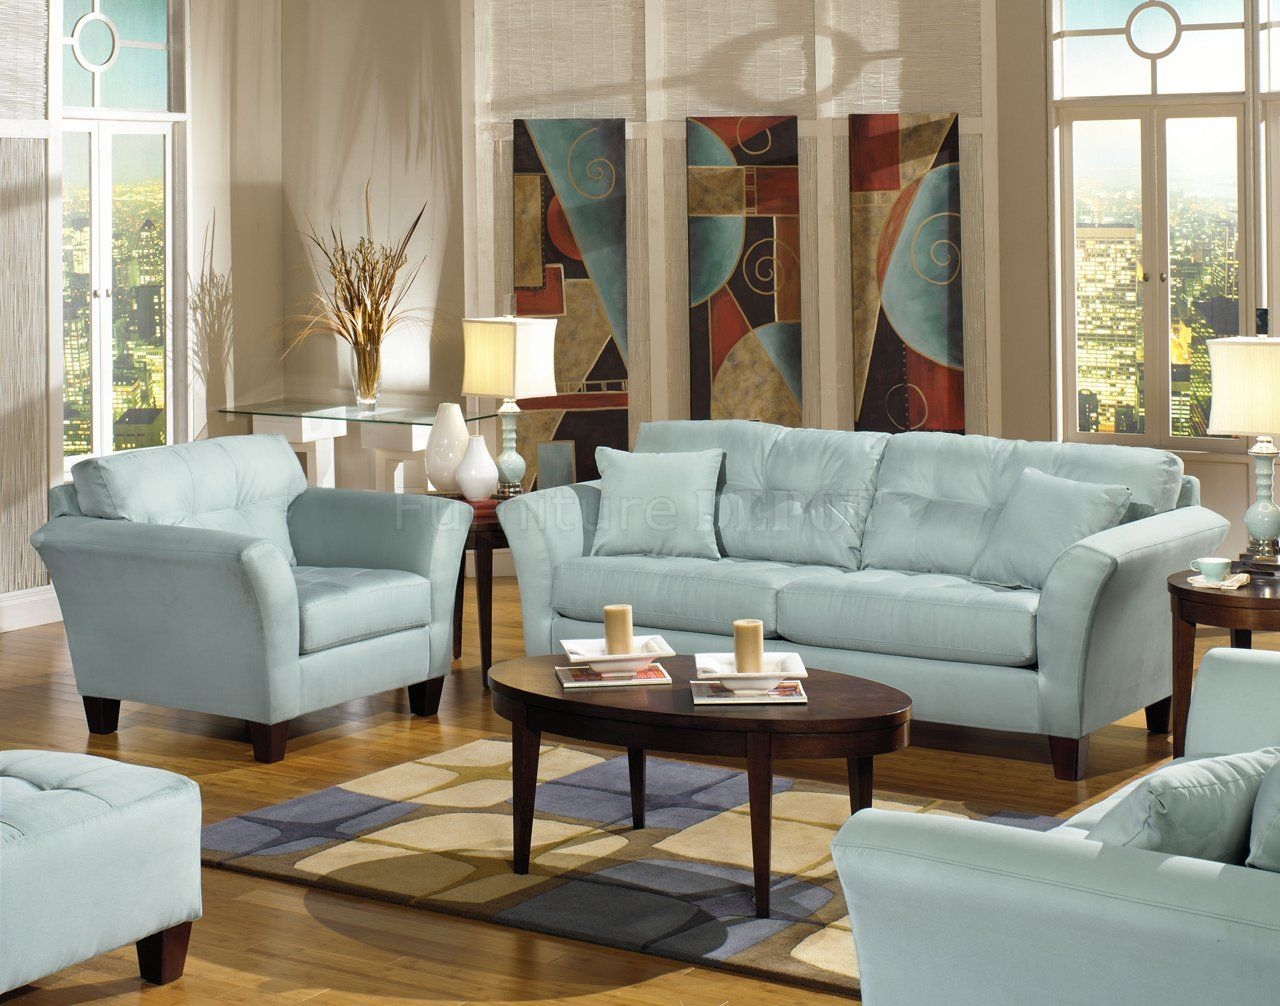 Best Light Blue Fabric Modern Sofa Loveseat Set W Wood Legs 400 x 300